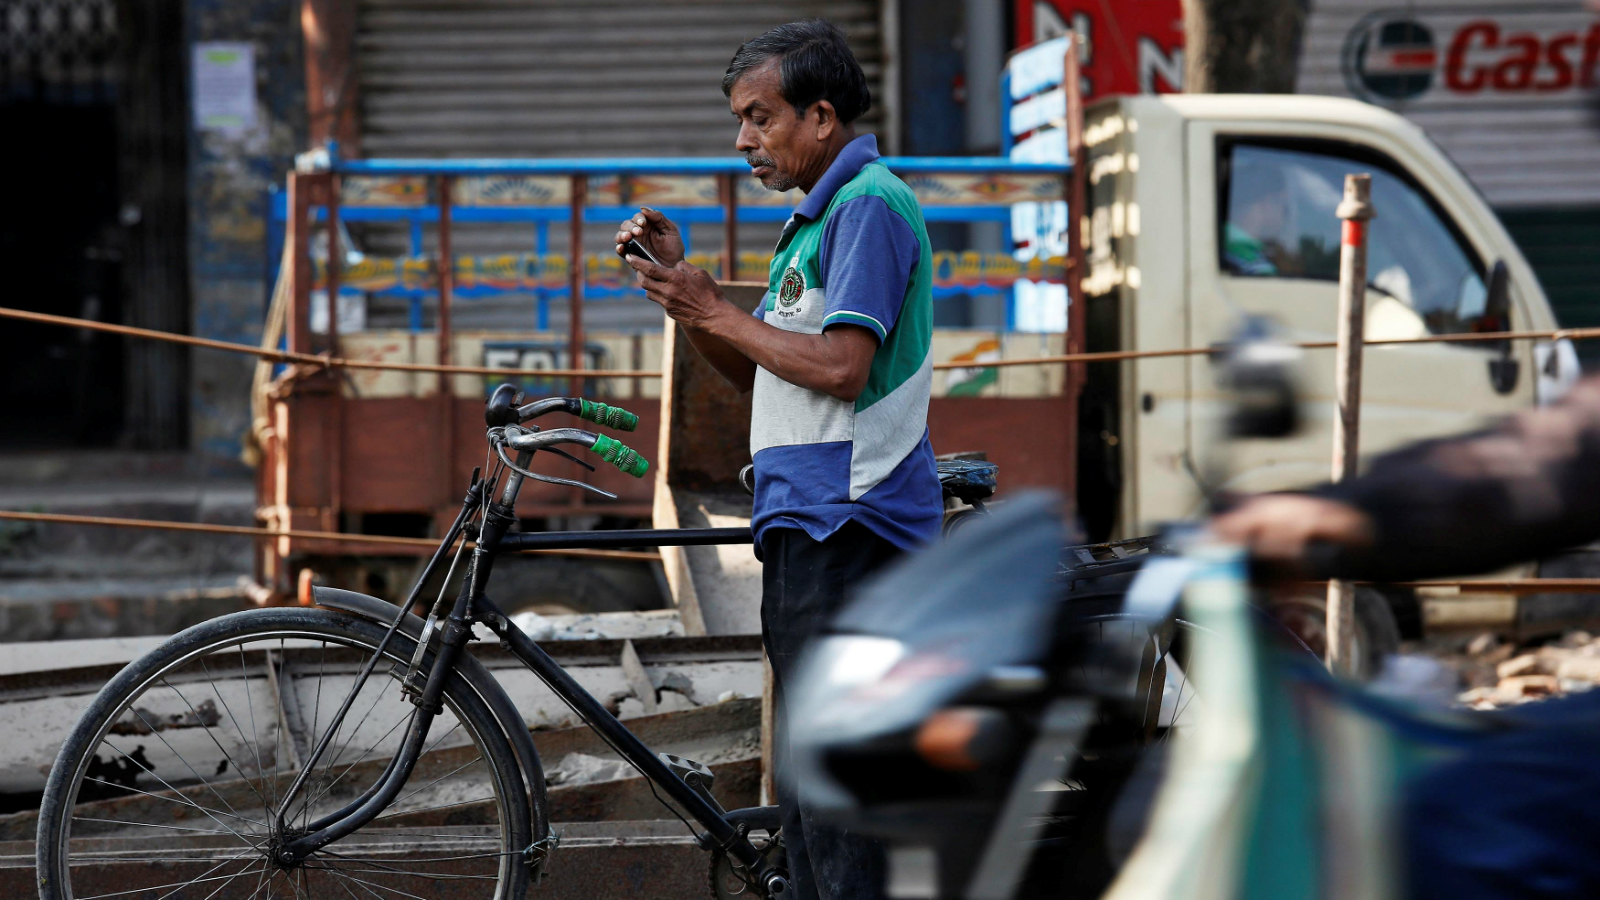 A man checks his mobile phone as he stands on a busy road in Kolkata, India January 6, 2017.